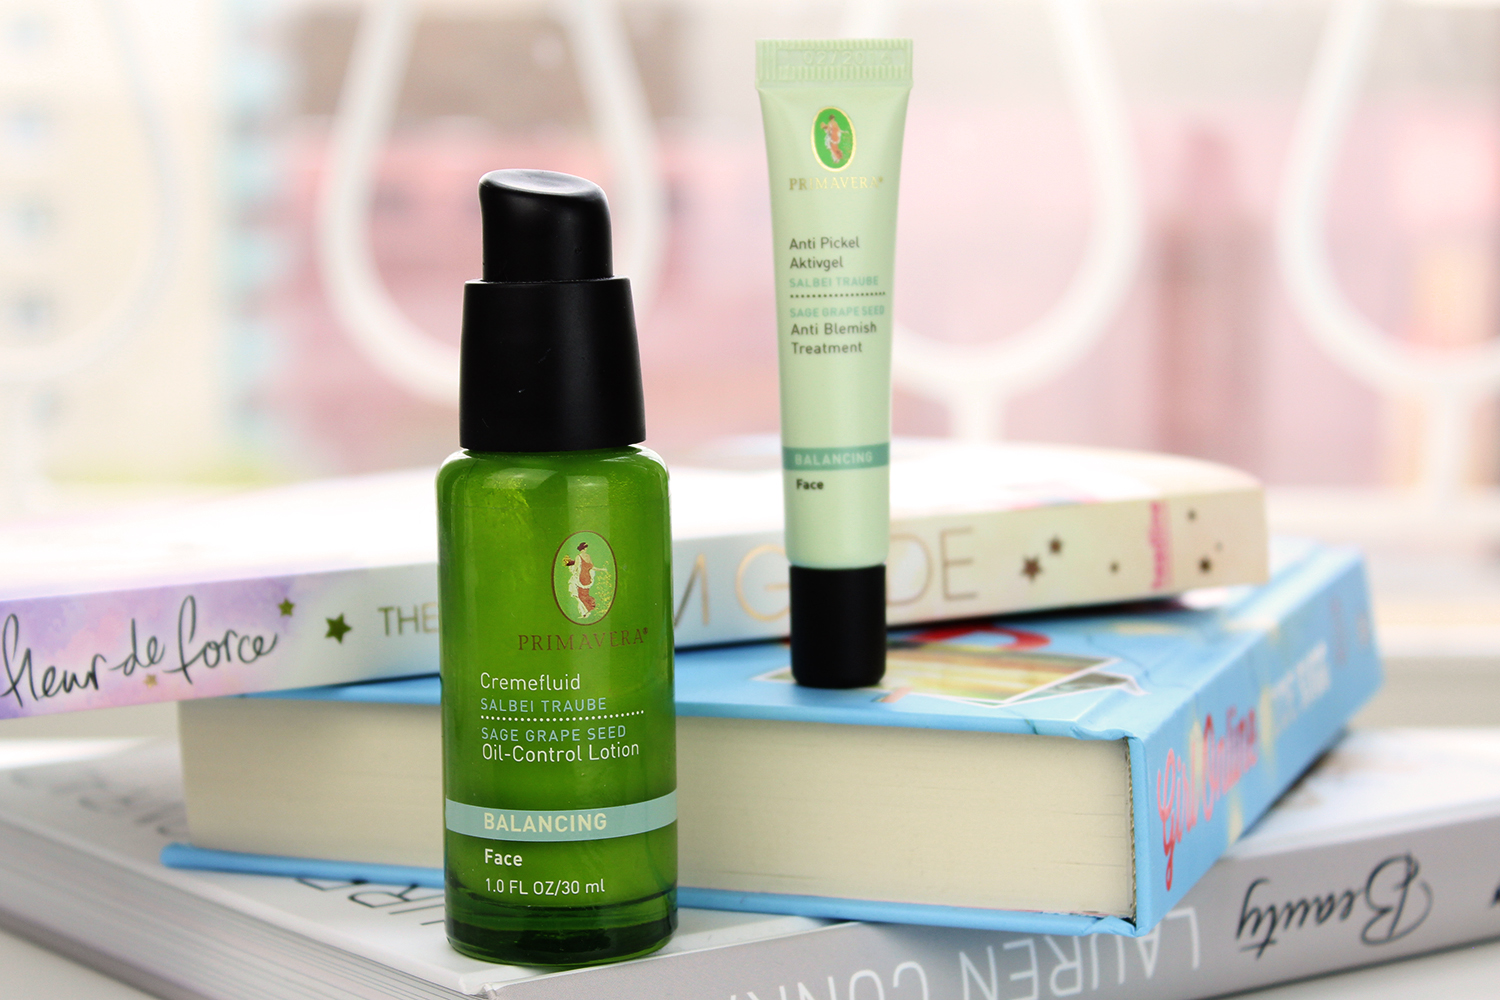 Advance-your-style.de, Beautyblog, Berlin, Review, Naturkosmetik, Pflege für unreine Haut, PRIMAVERA Salbei Traube, Cremefluide, Anti-Pickel Aktivgel